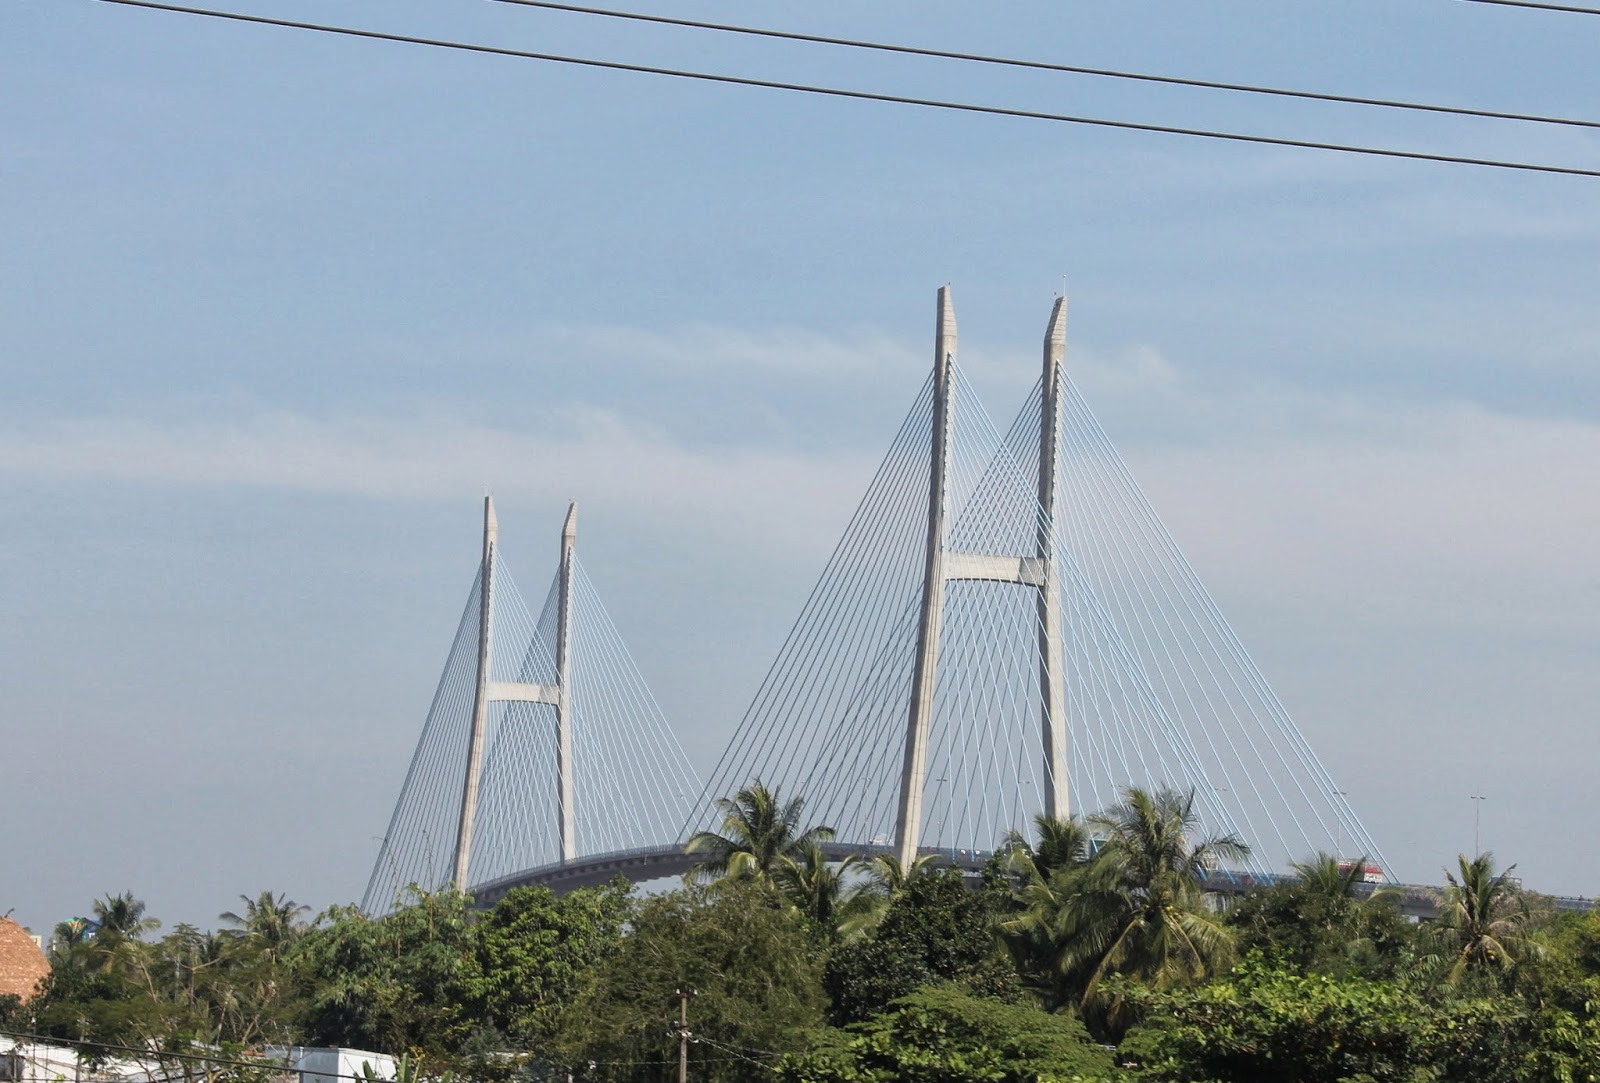 Rạch Miễu Bridge, a cable-stayed suspension bridge over the Mekong River.